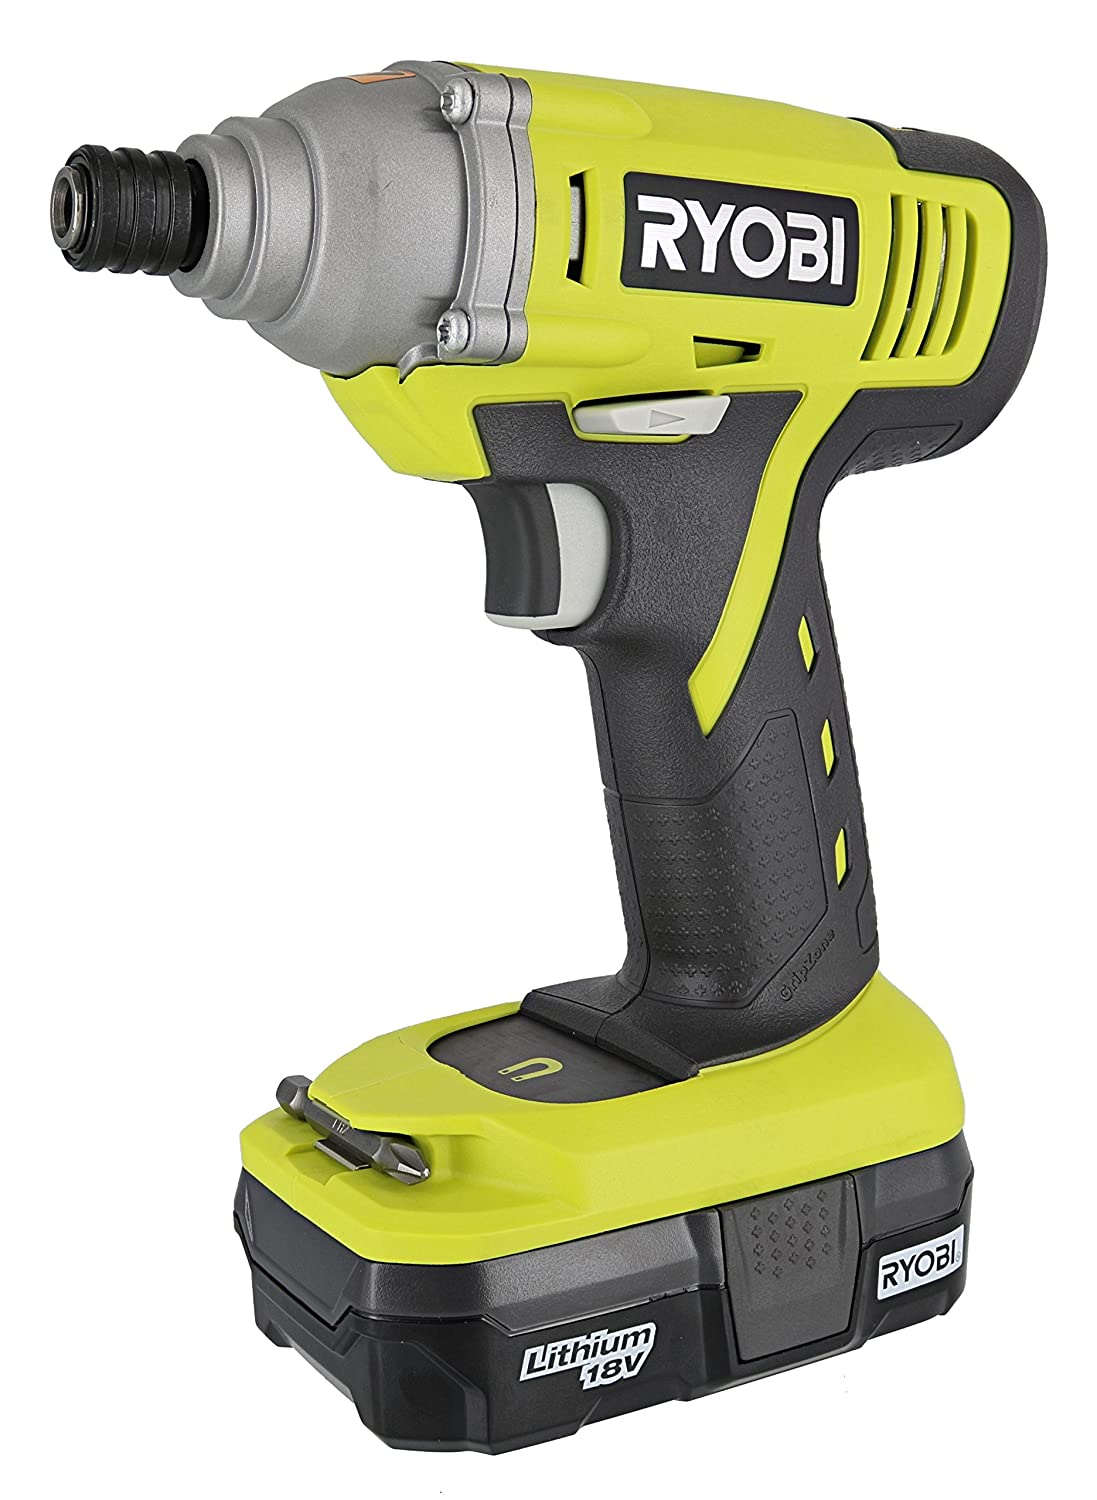 Ryobi P1870 One+ Lithium Ion Battery Powered 1/4 Inch 1,500 Inch Pound Impact Driver Kit (P236 Impact Driver, P102 18V Battery and P119 Charger Included)